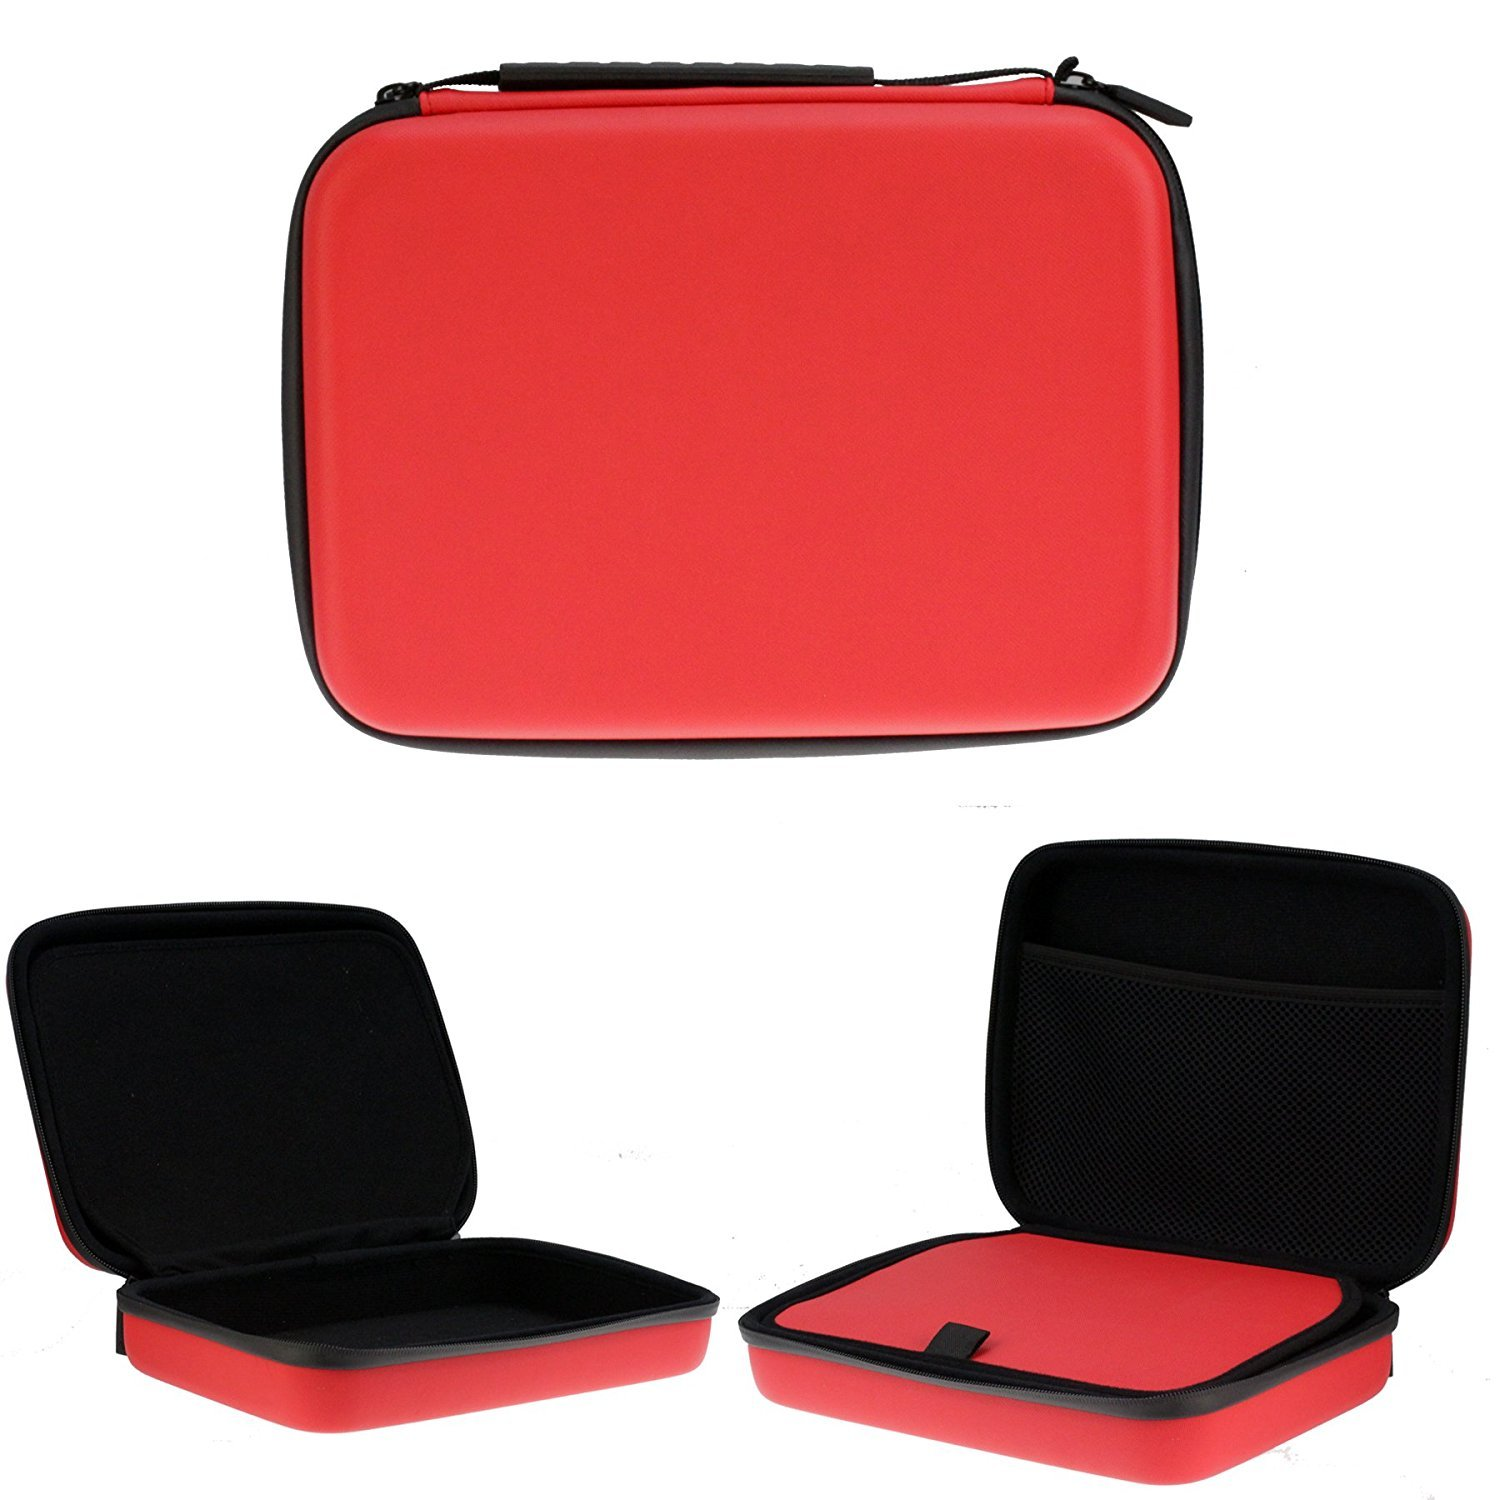 Navitech Red Heavy Duty Rugged Camera Case / Cover For The AEE M1 Flexi Cam